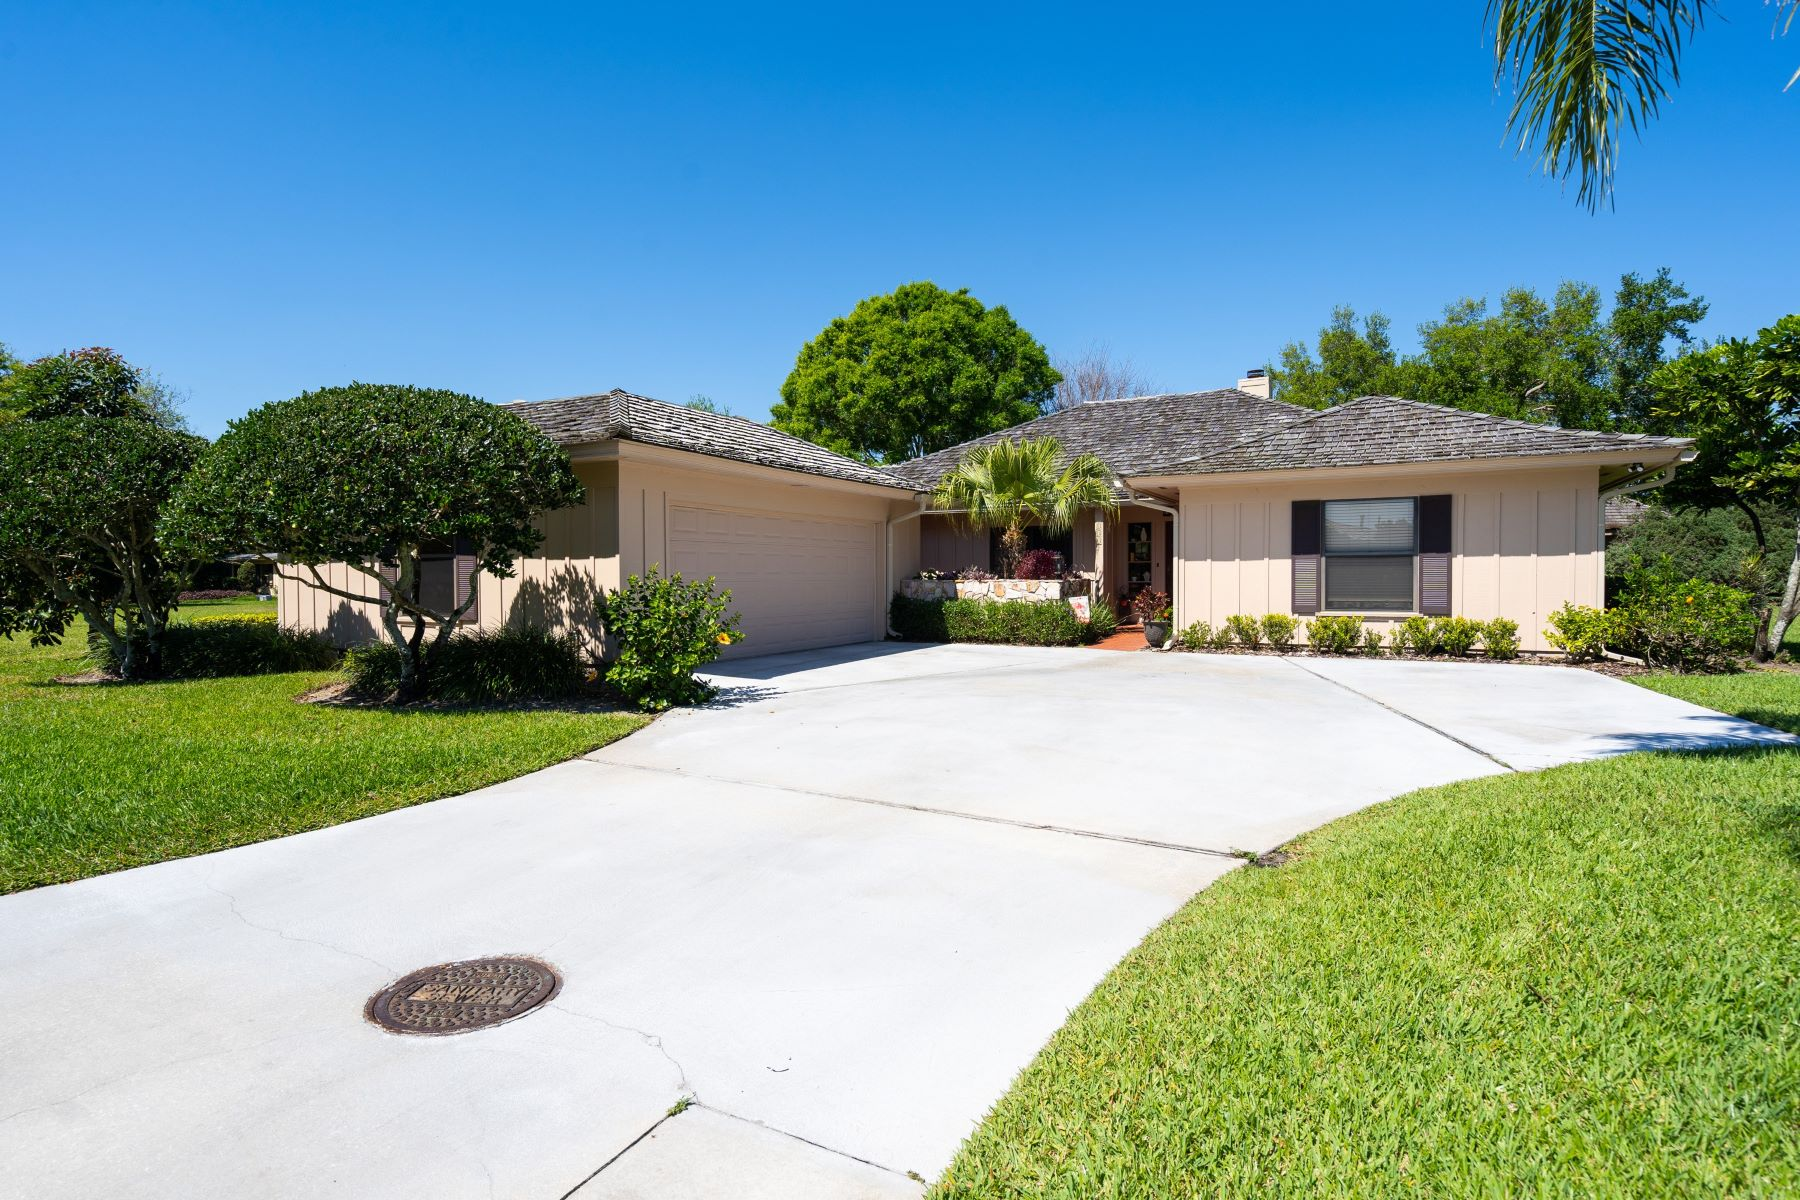 Single Family Homes for Sale at 131 Prestwick Circle Vero Beach, Florida 32967 United States